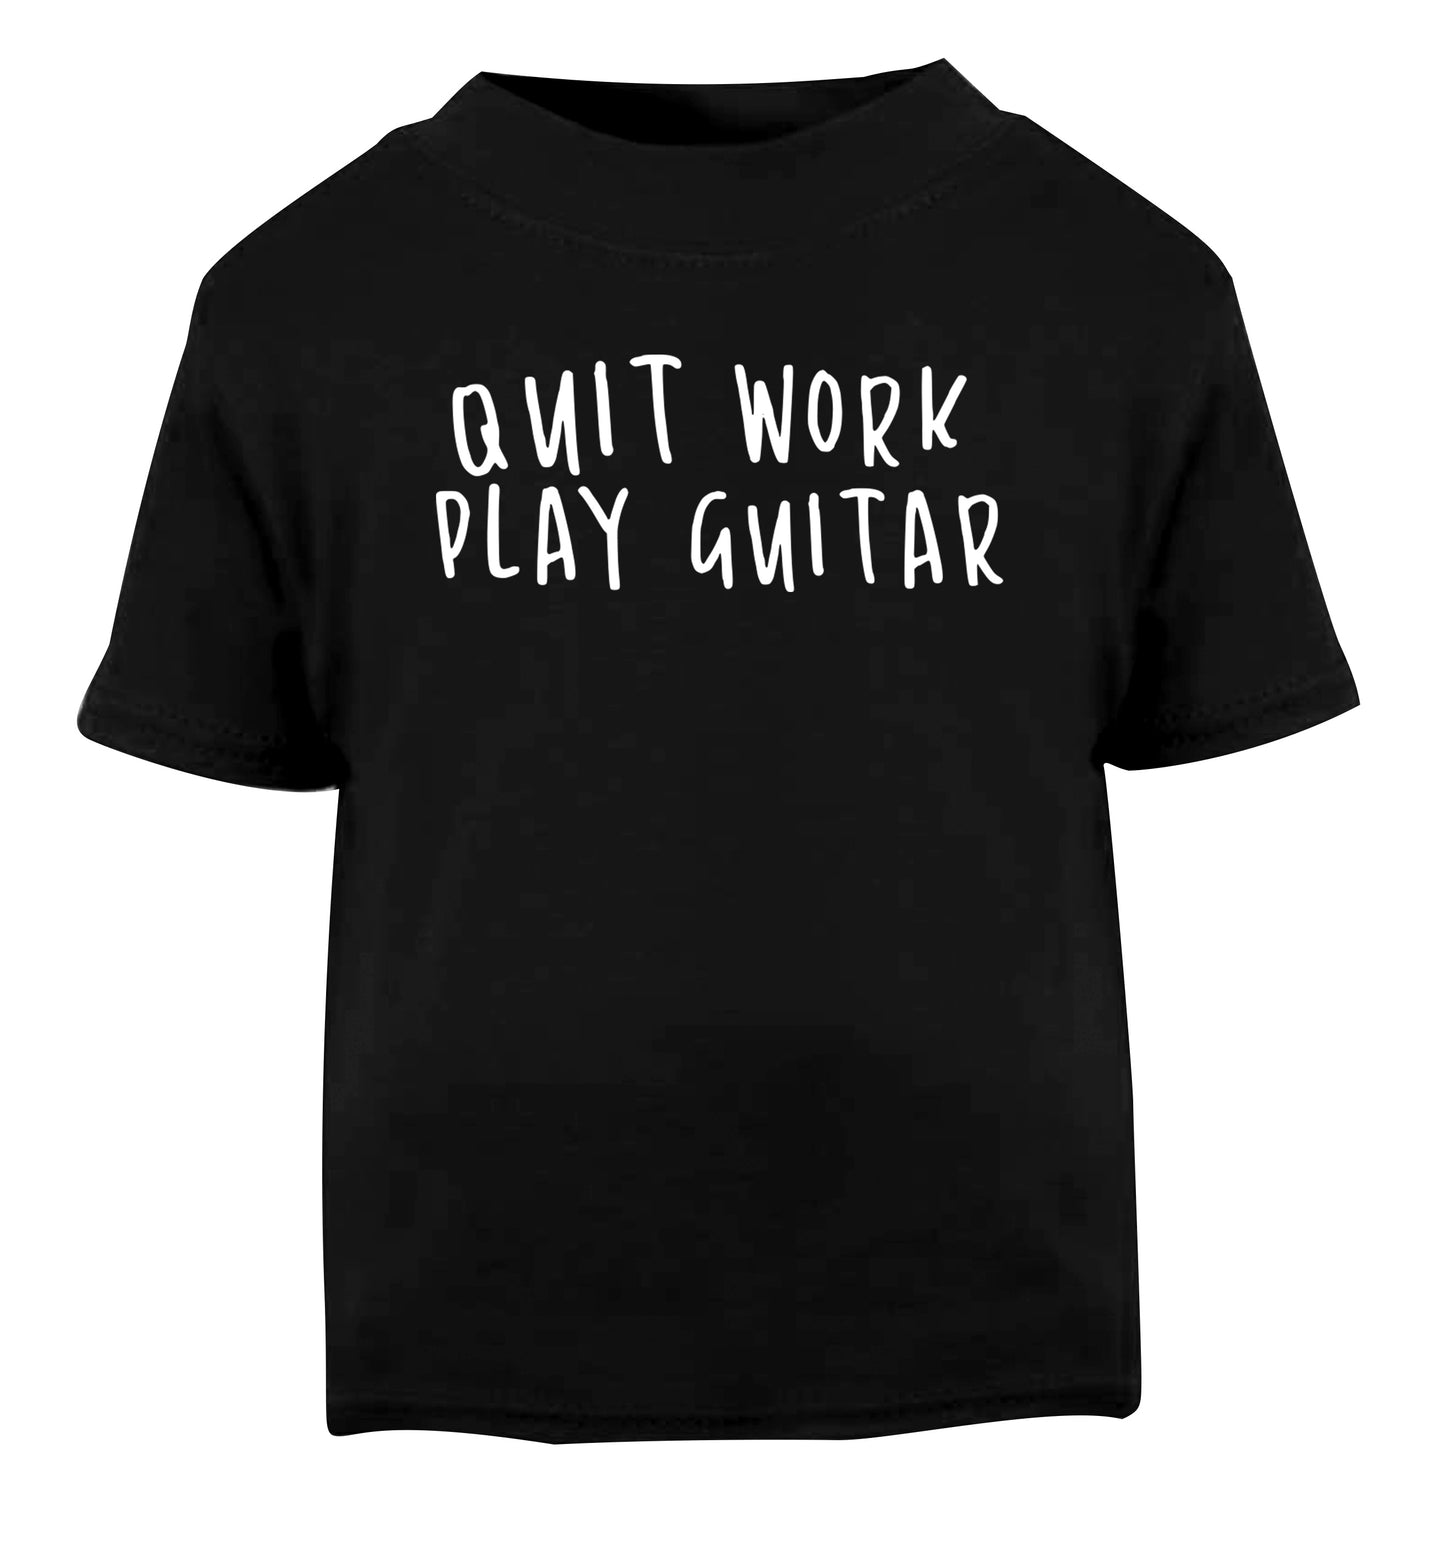 Quit work play guitar Black Baby Toddler Tshirt 2 years